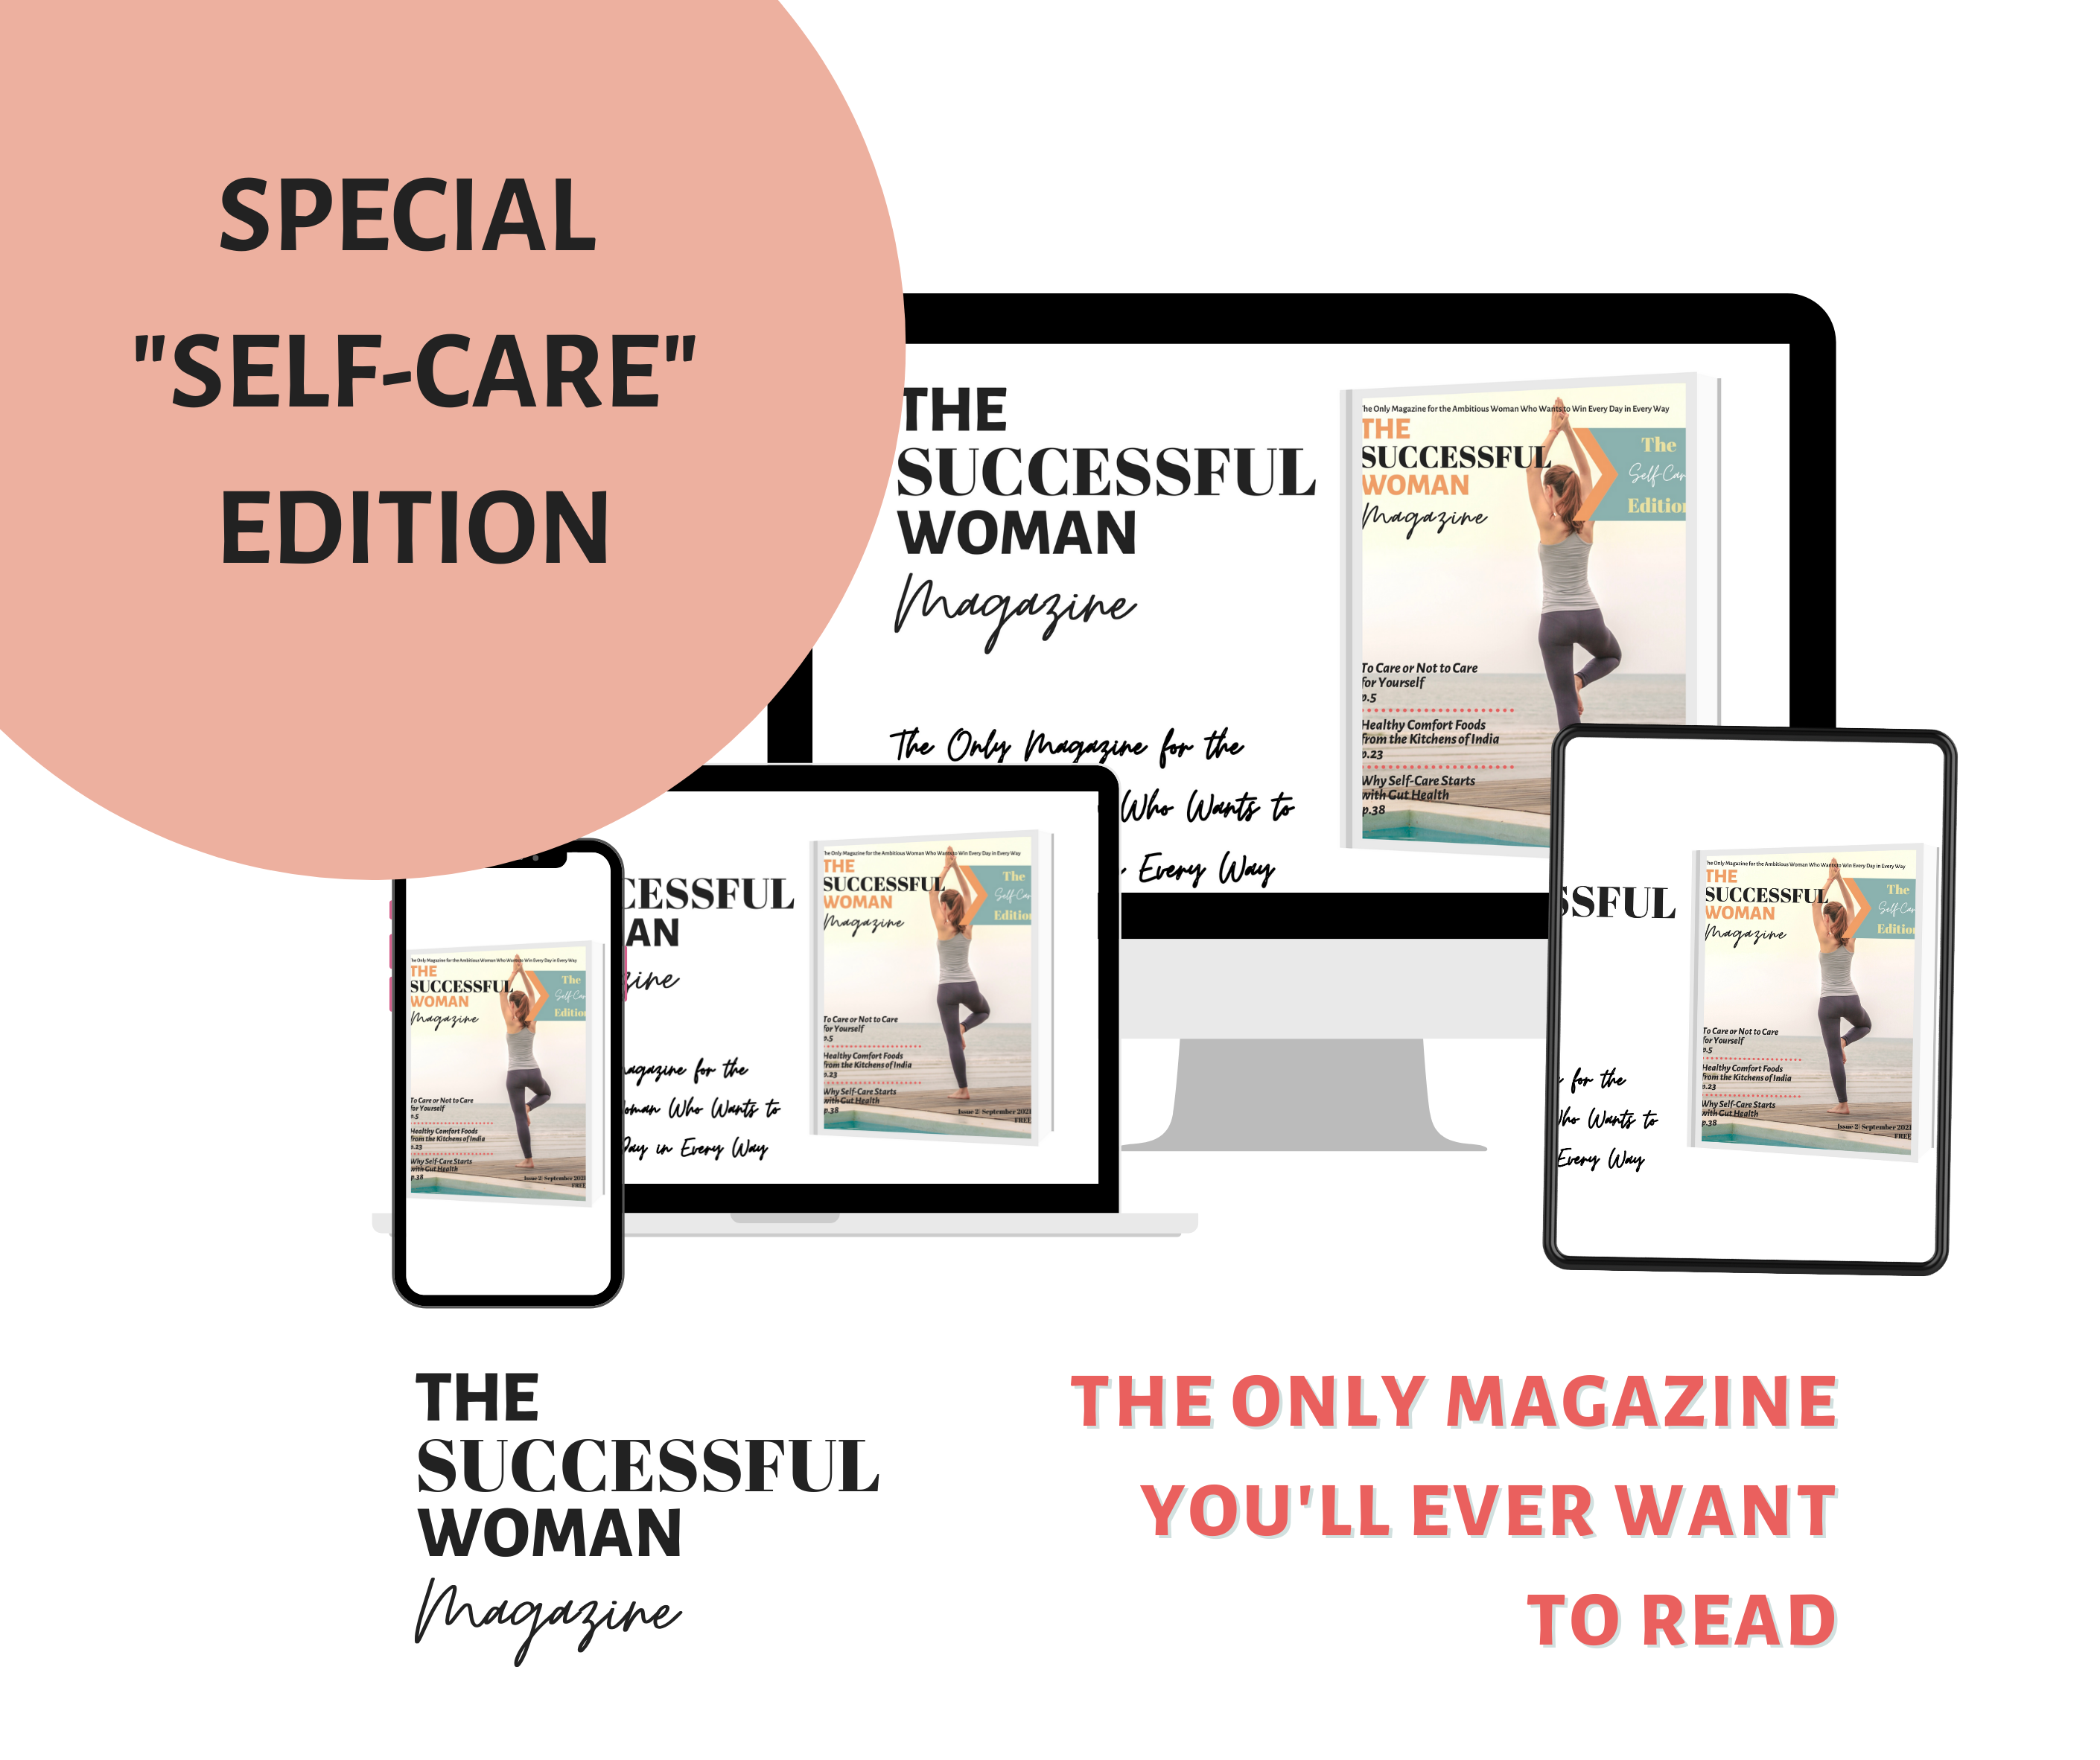 Issue 2 The Successful Woman Magazine